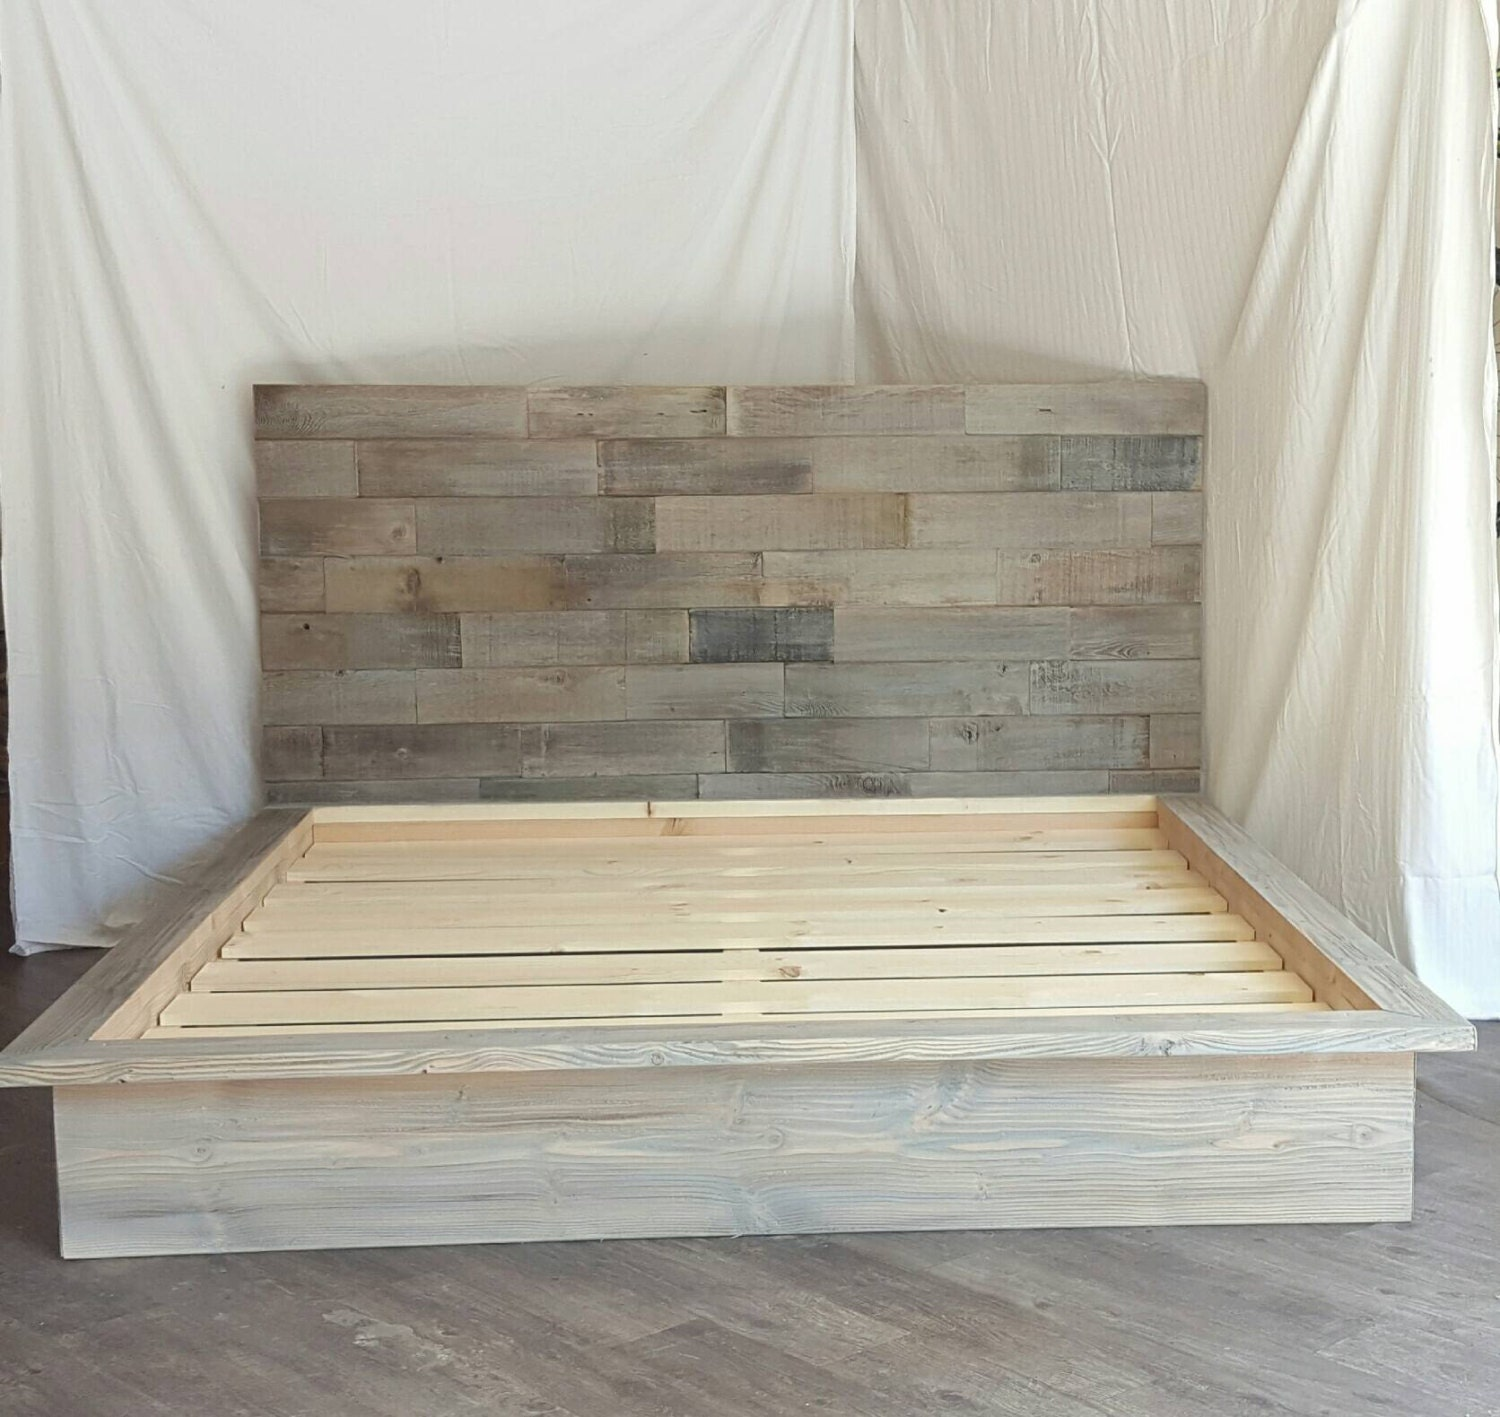 molding dsc decorating new large headboard to size look queen fit design of bed layered it wanted top cut plywood sheet a sides different purchased create weathered the on and diy tda wood i